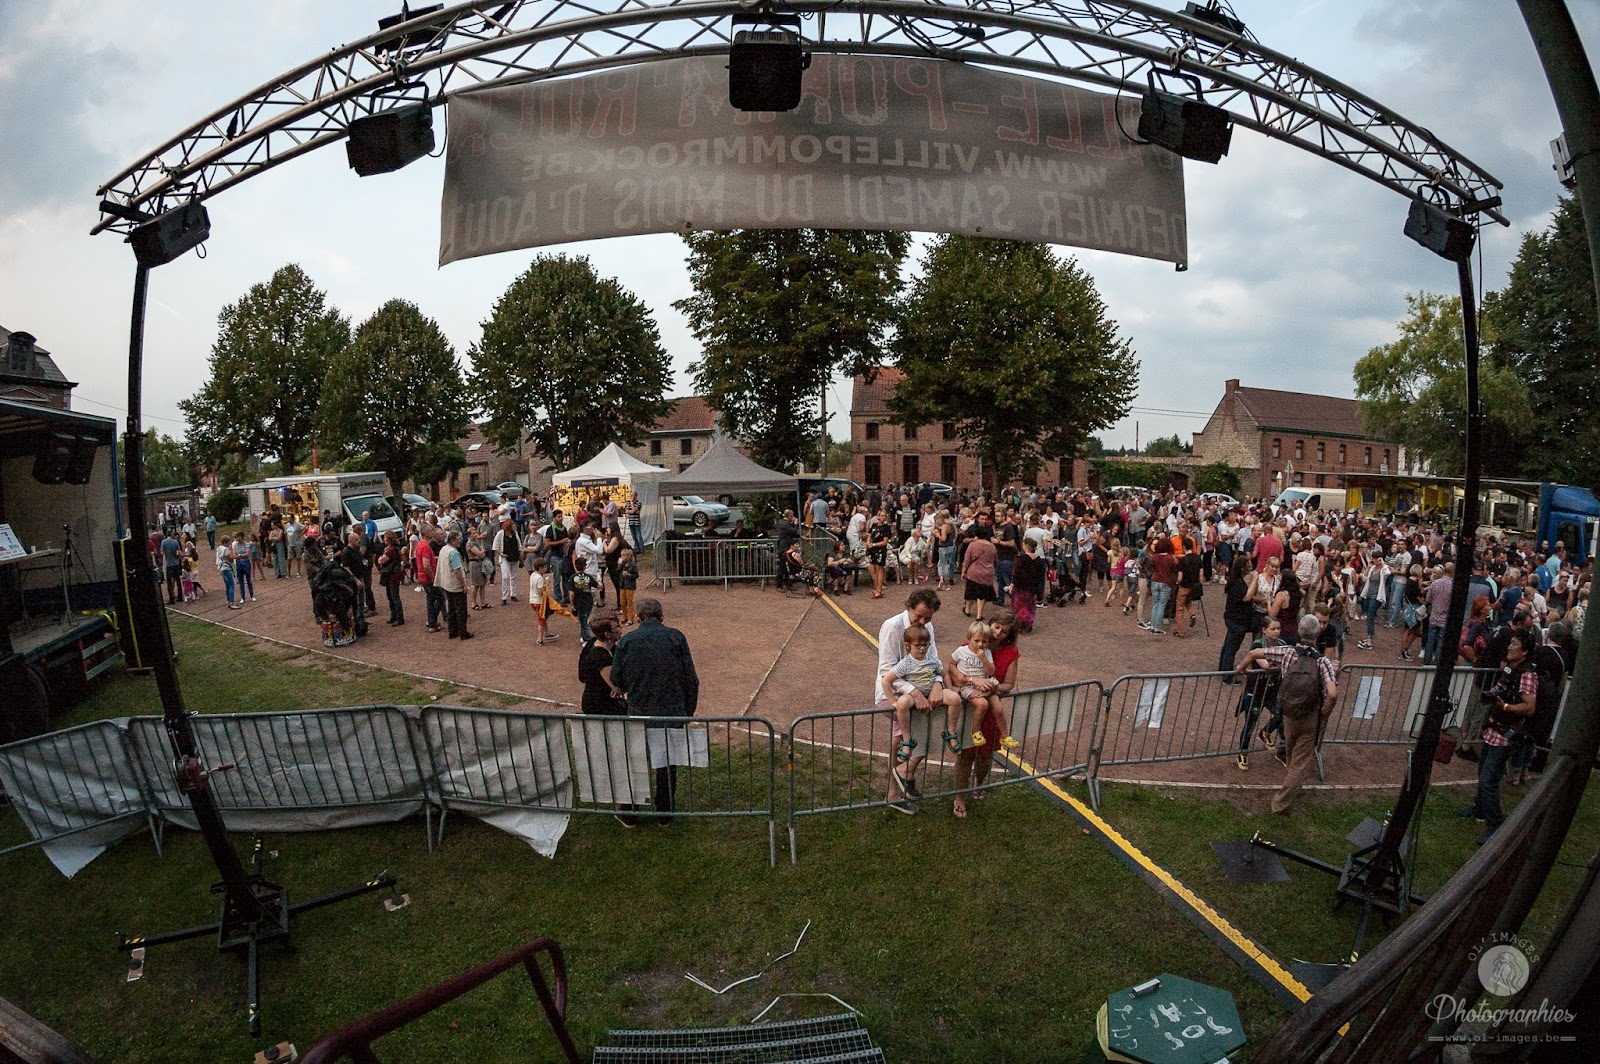 VillePomRock2017_26082017_OL-Images.be--68.jpg